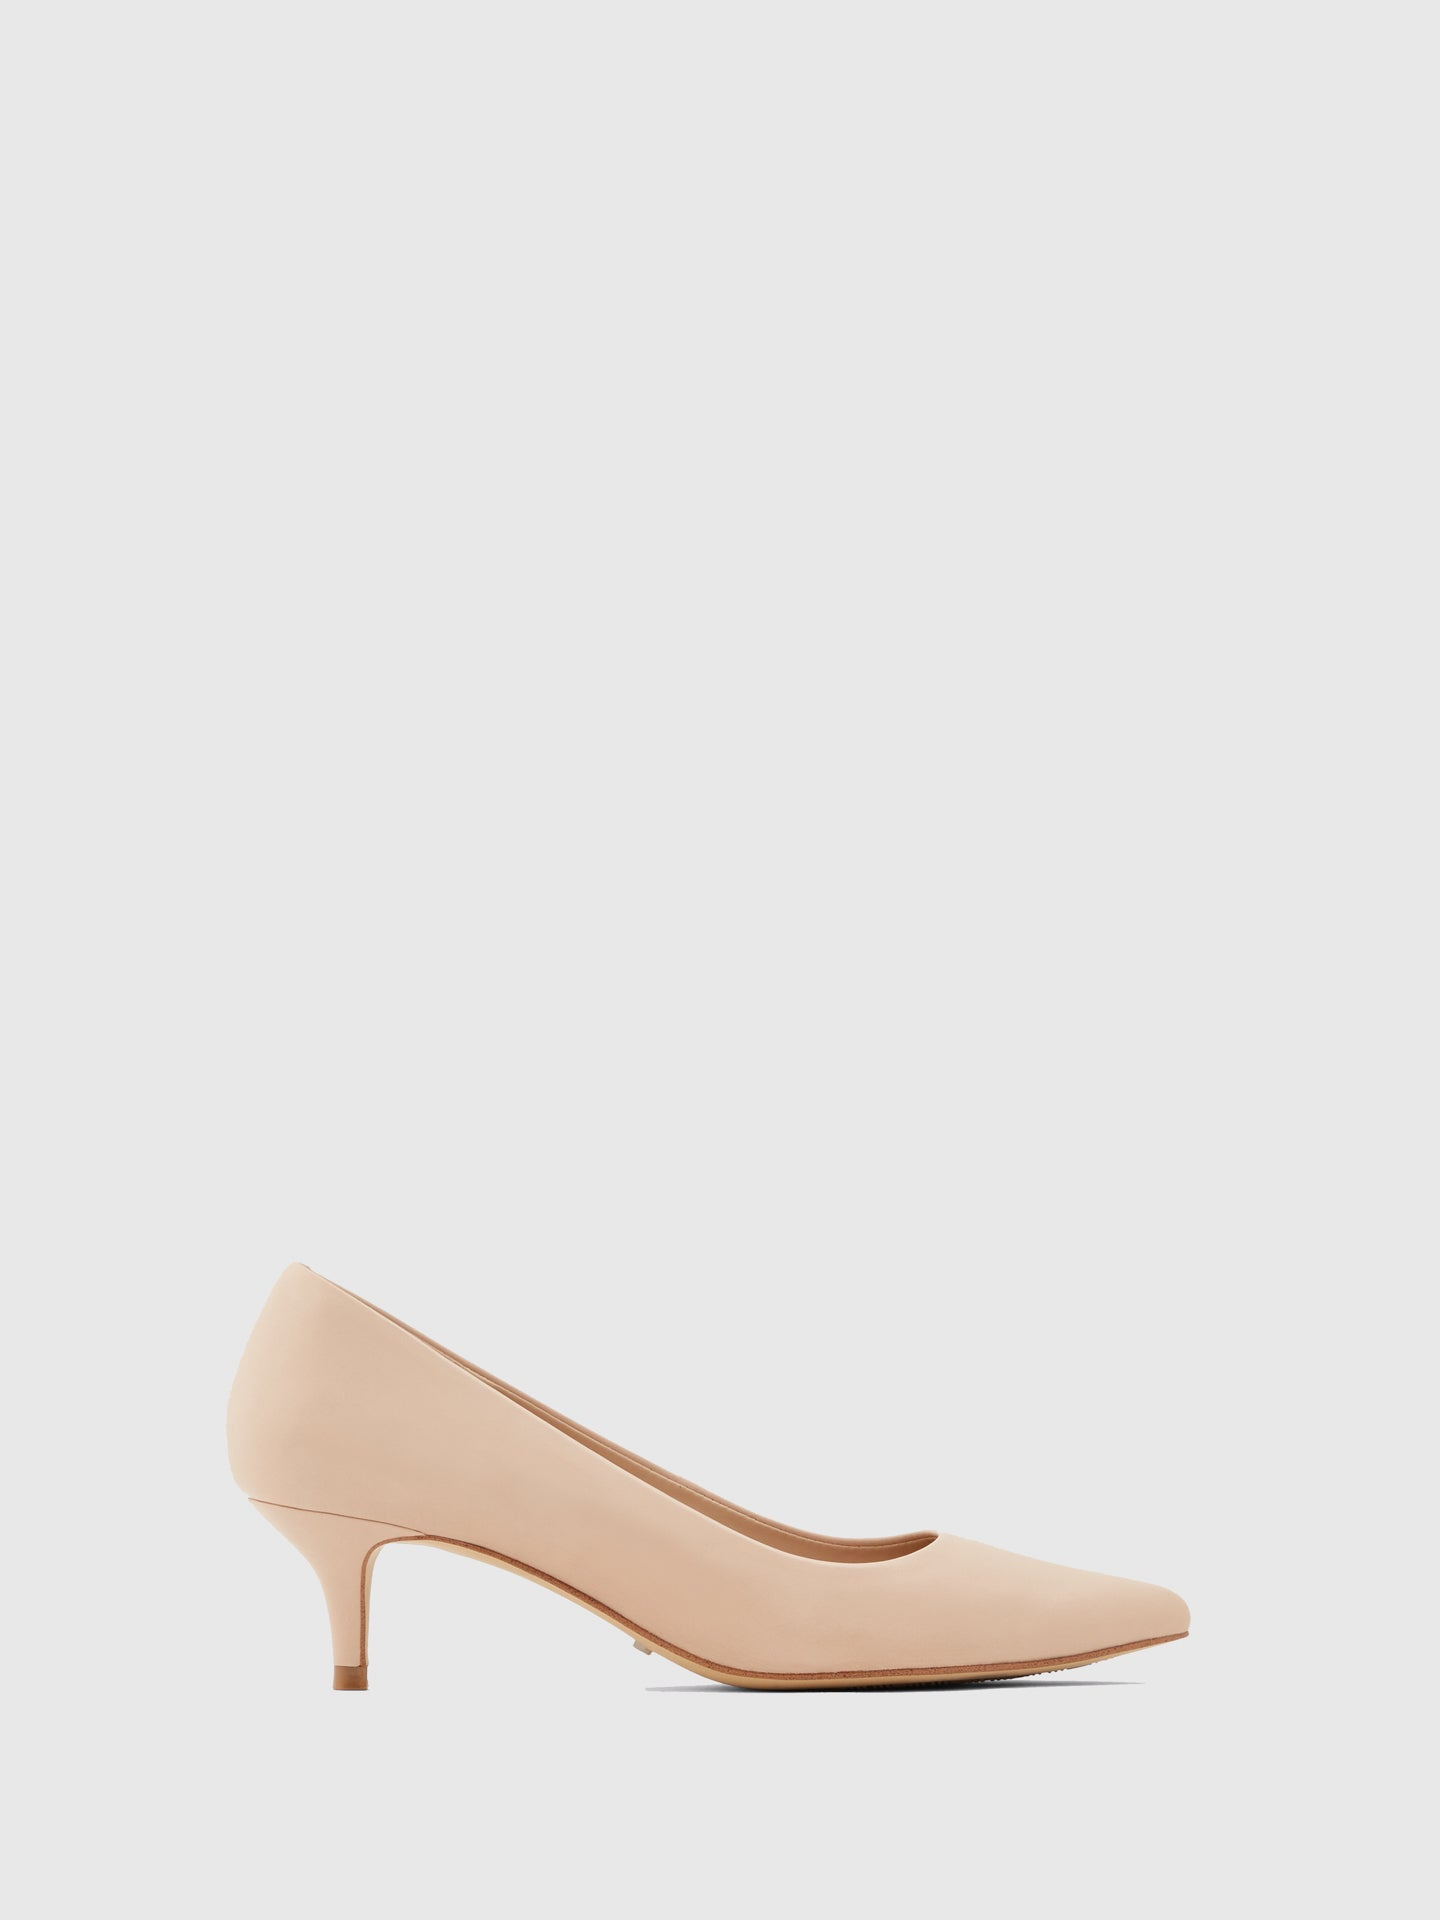 Aldo Wheat Kitten Heel Shoes